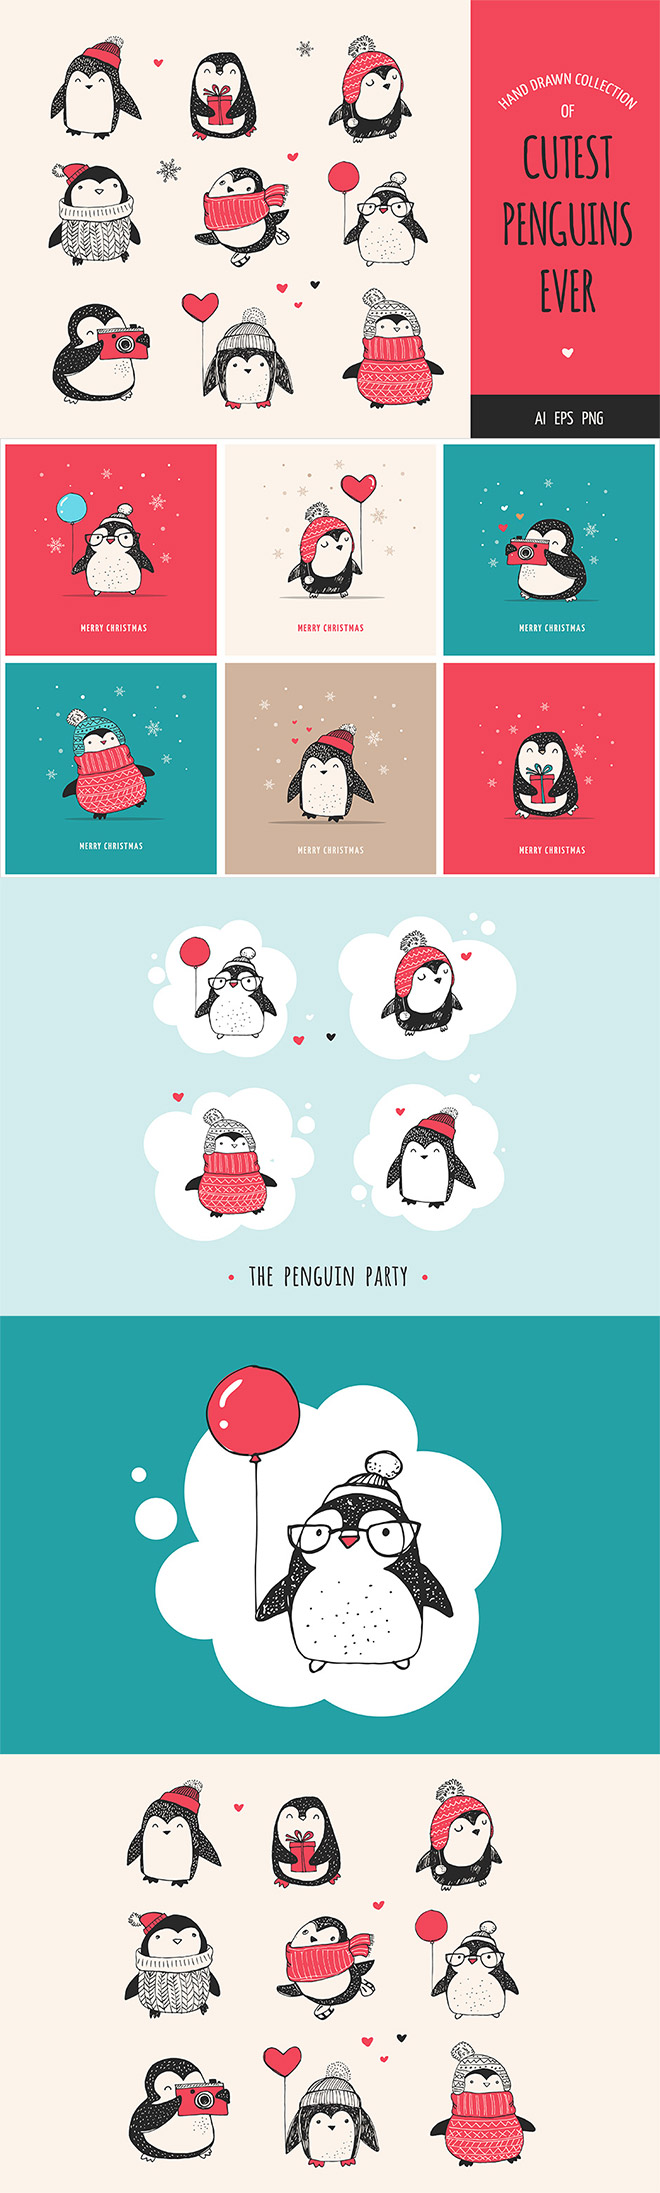 Cute Penguin Icons & Christmas Cards